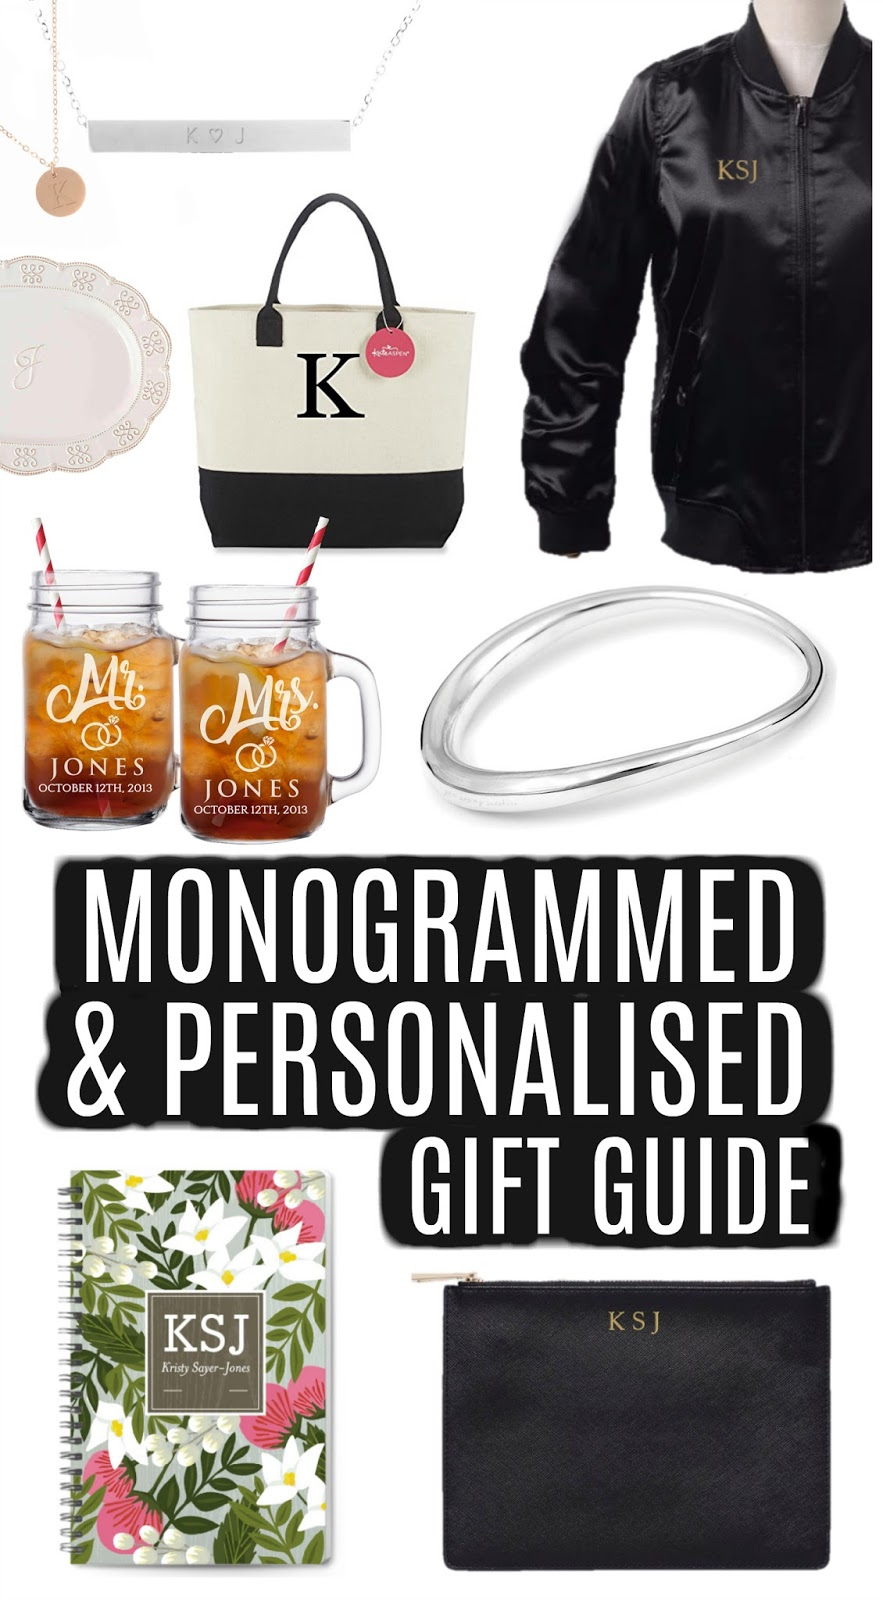 The Ultimate Monogrammed and Personalised Women's Gift Guide - Monogrammed Gift Ideas, Personalized Gifts, Birthday Gift Ideas, Christmas Gift Inspiration, Wedding Gift Ideas